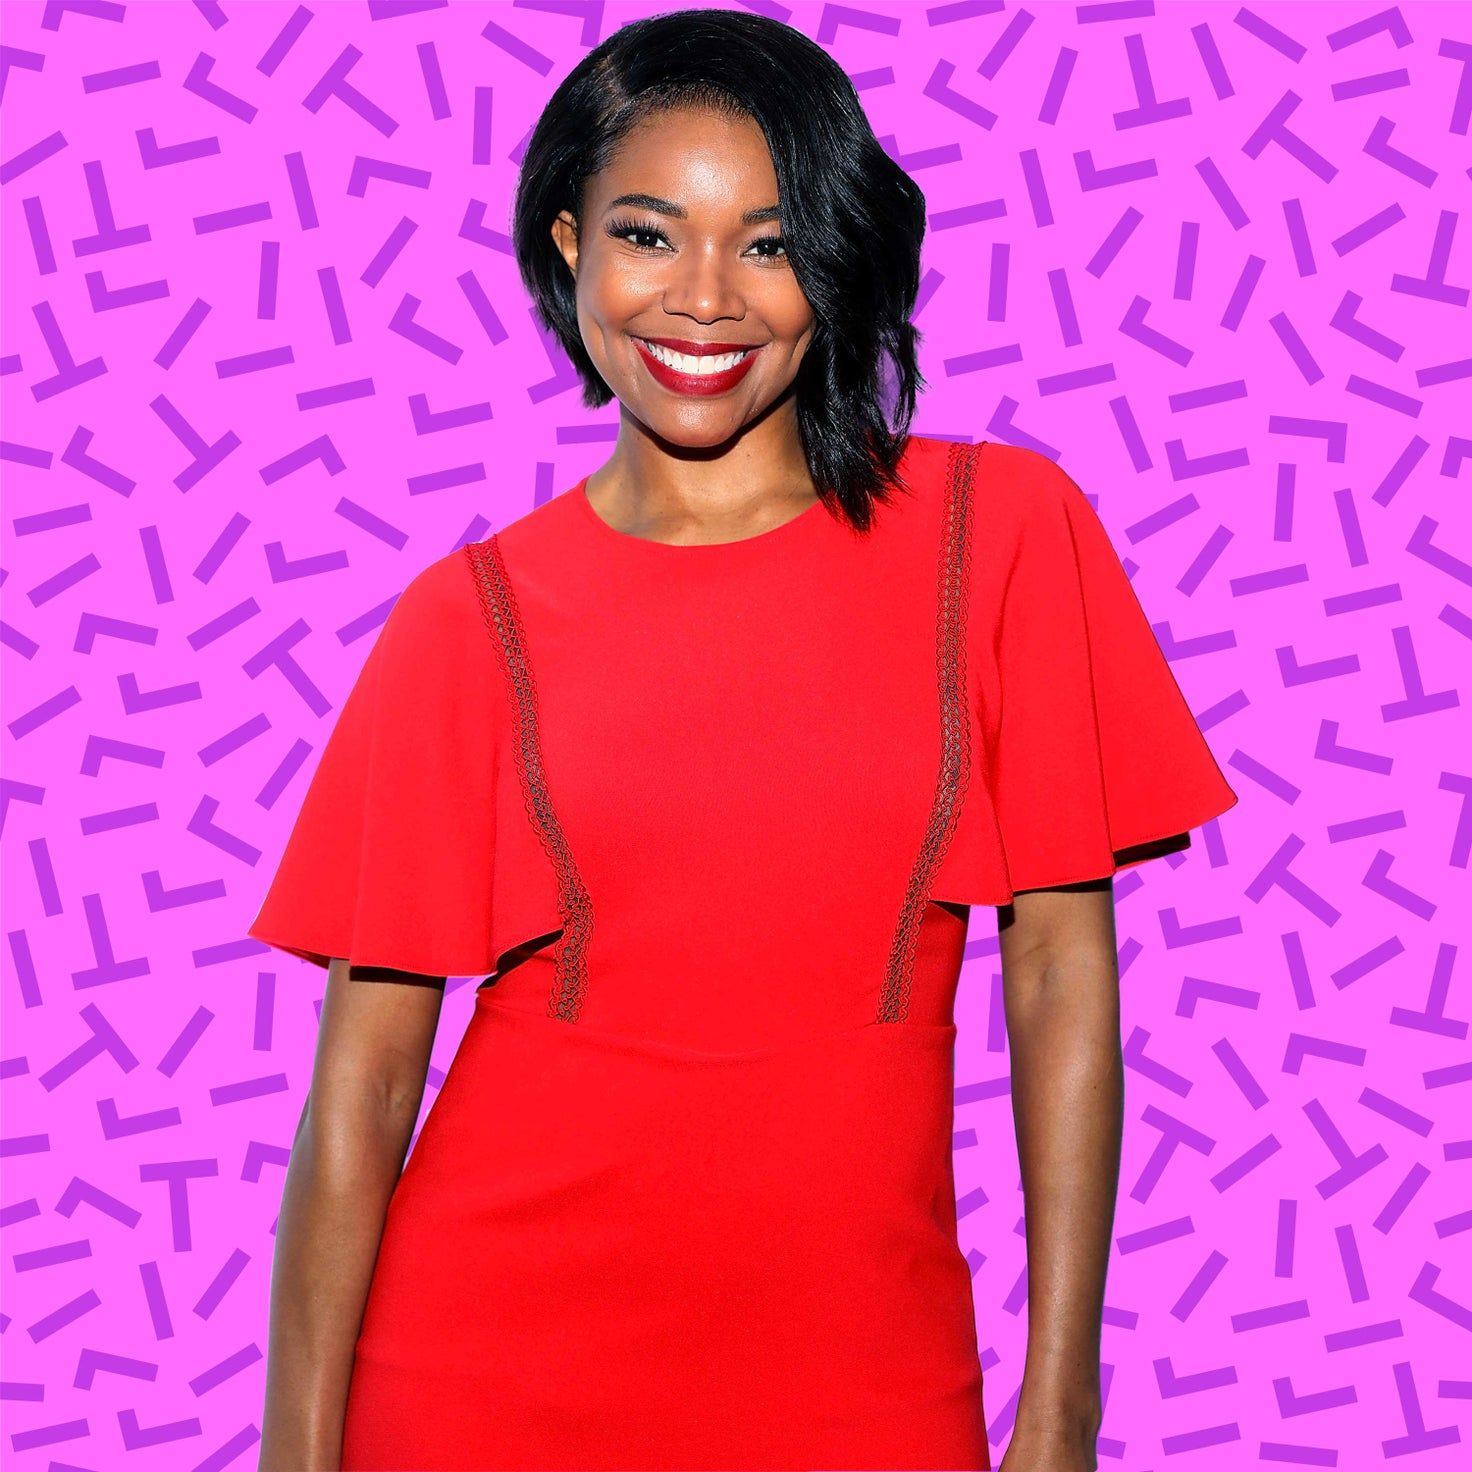 Gabrielle Union's Heartbreaking Struggle with Infertility: 'I've Had Eight or Nine Miscarriages'